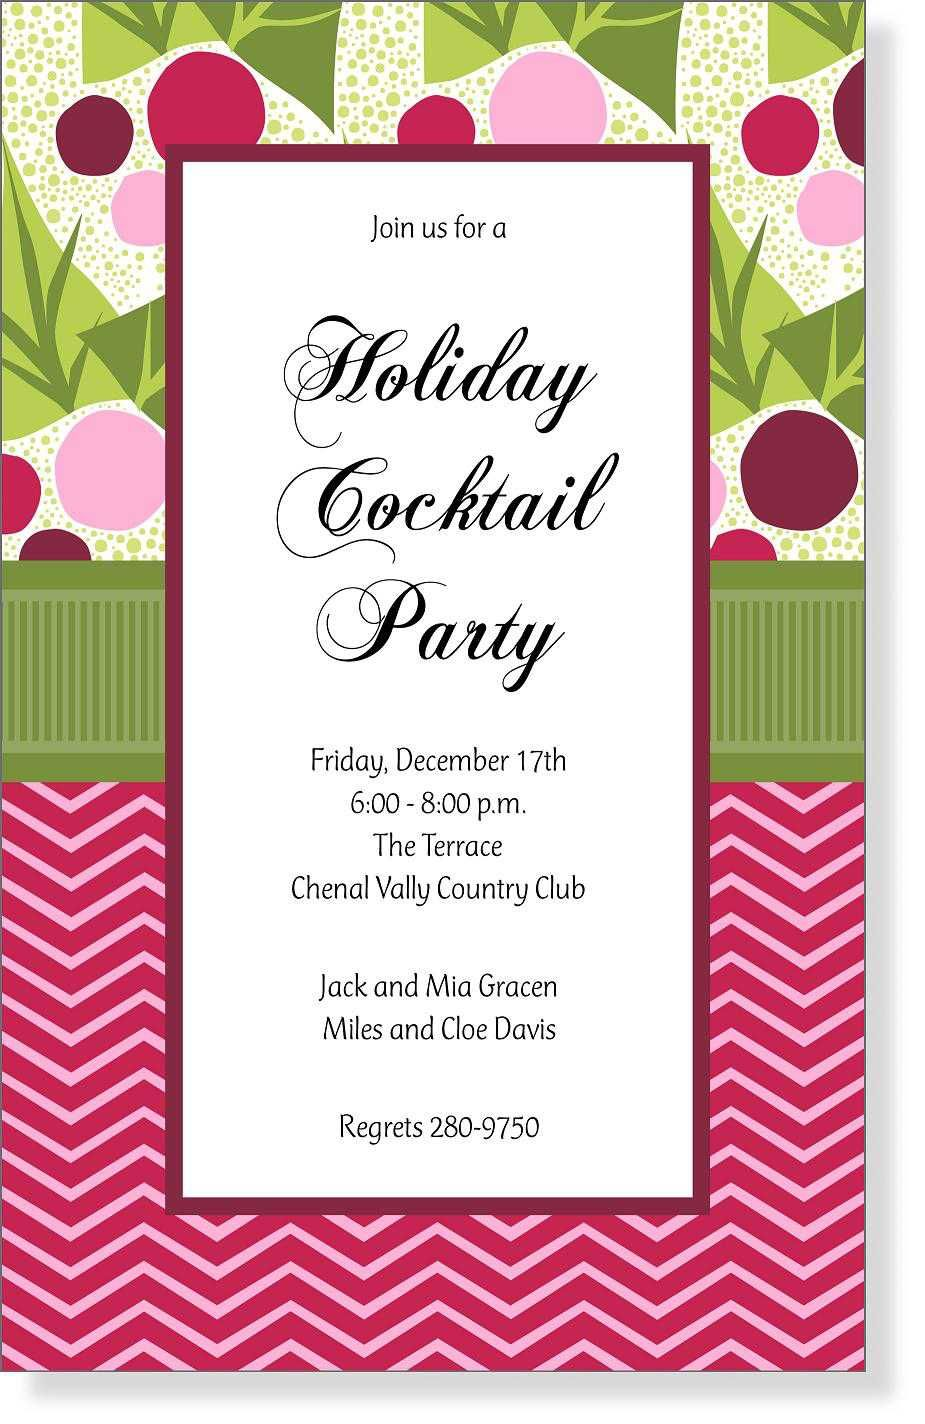 Christmas Open House Invite 1950s | Open house, Open house parties ...